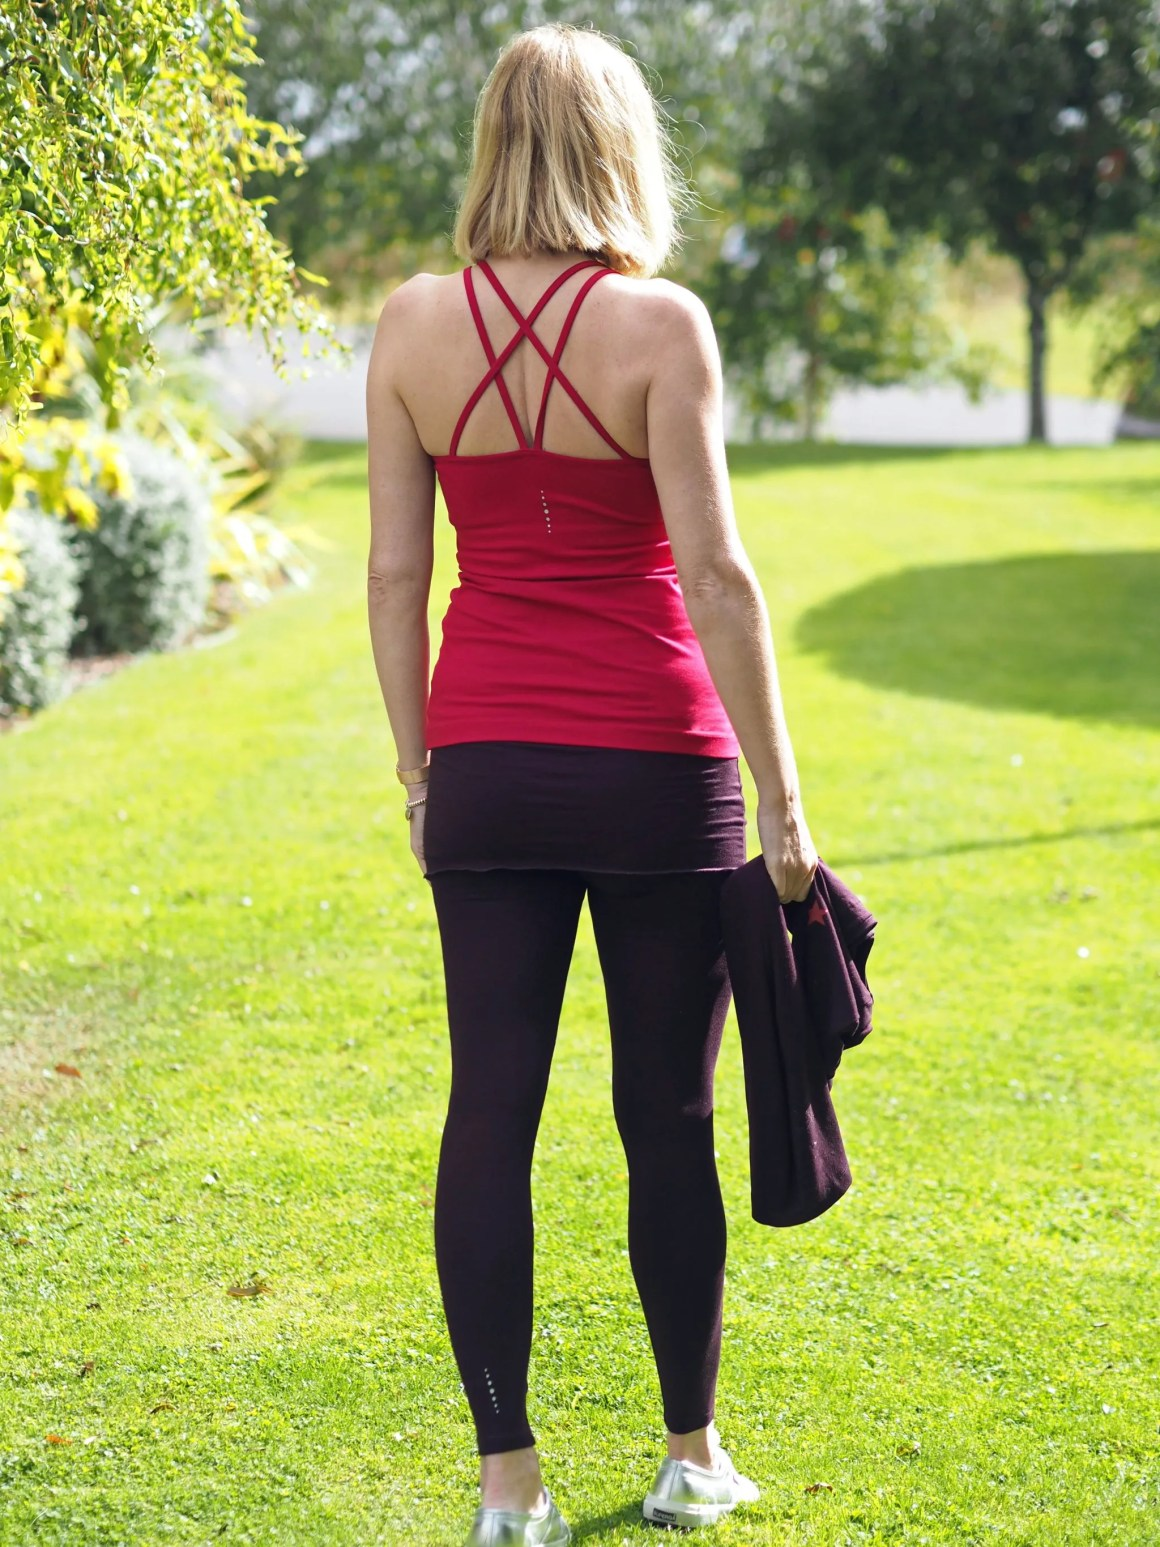 What-Lizzy-loves-bamboo-yoga-clothes-crossover-vest-leggings